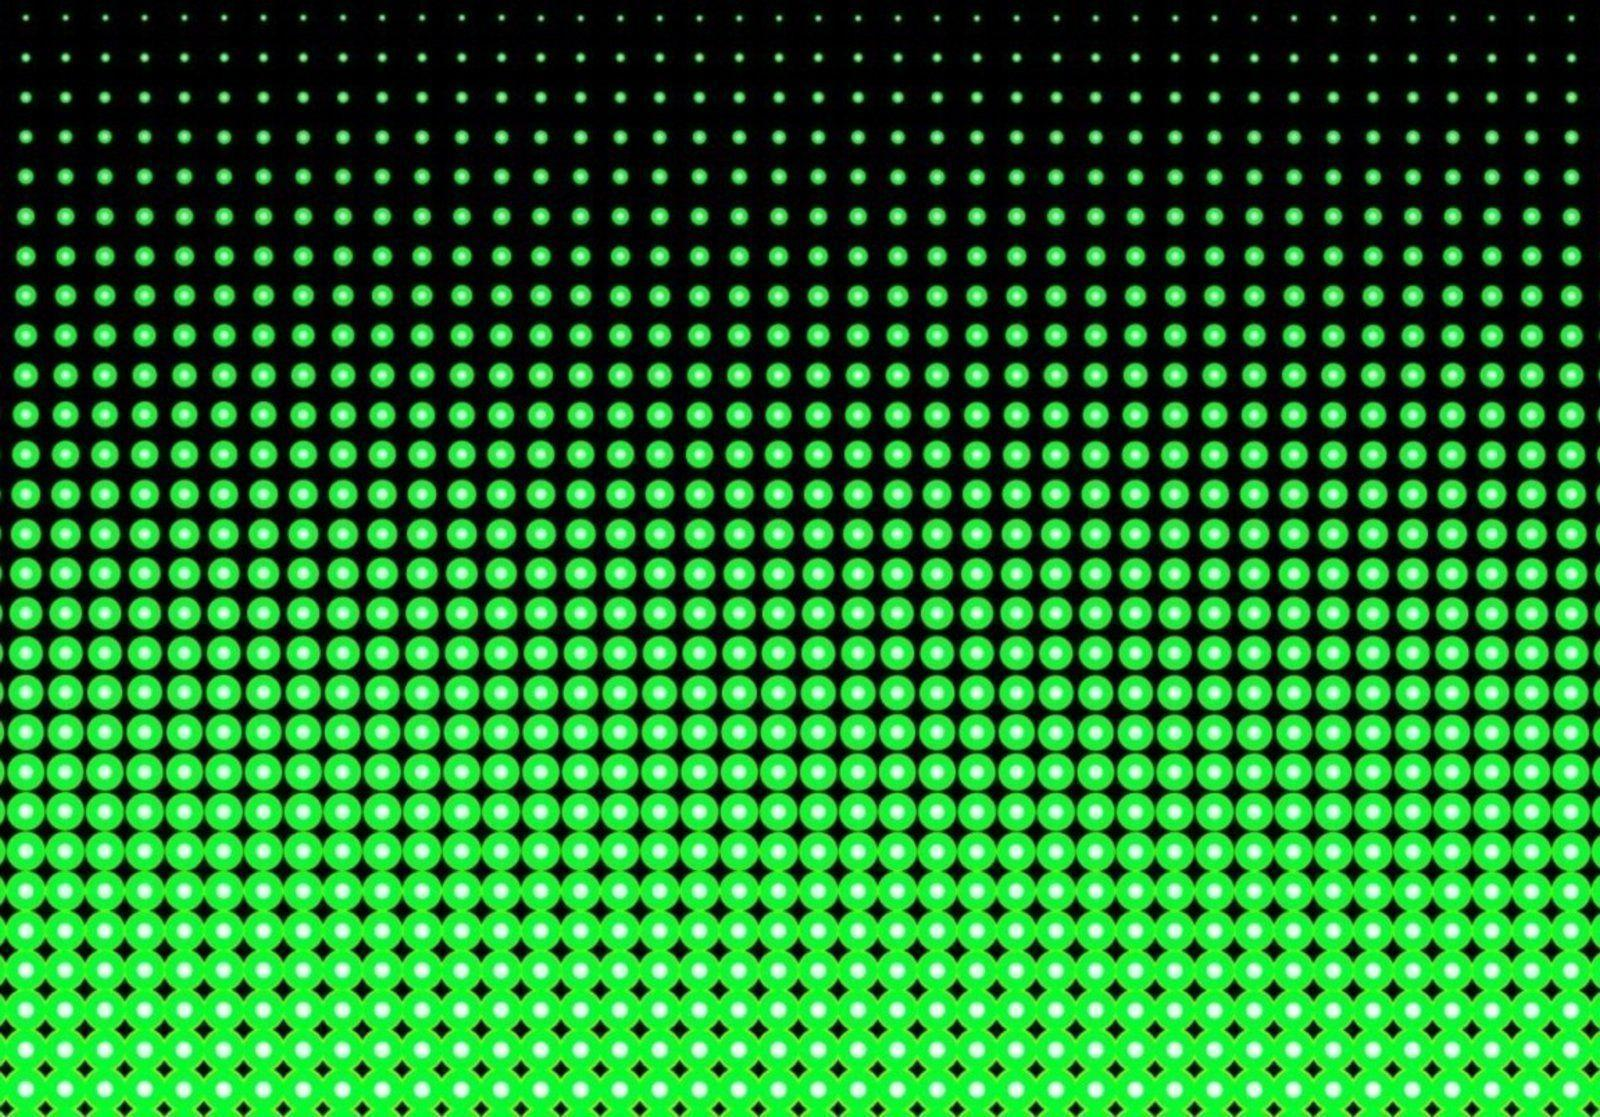 Wallpapers For > Backgrounds Green And Black